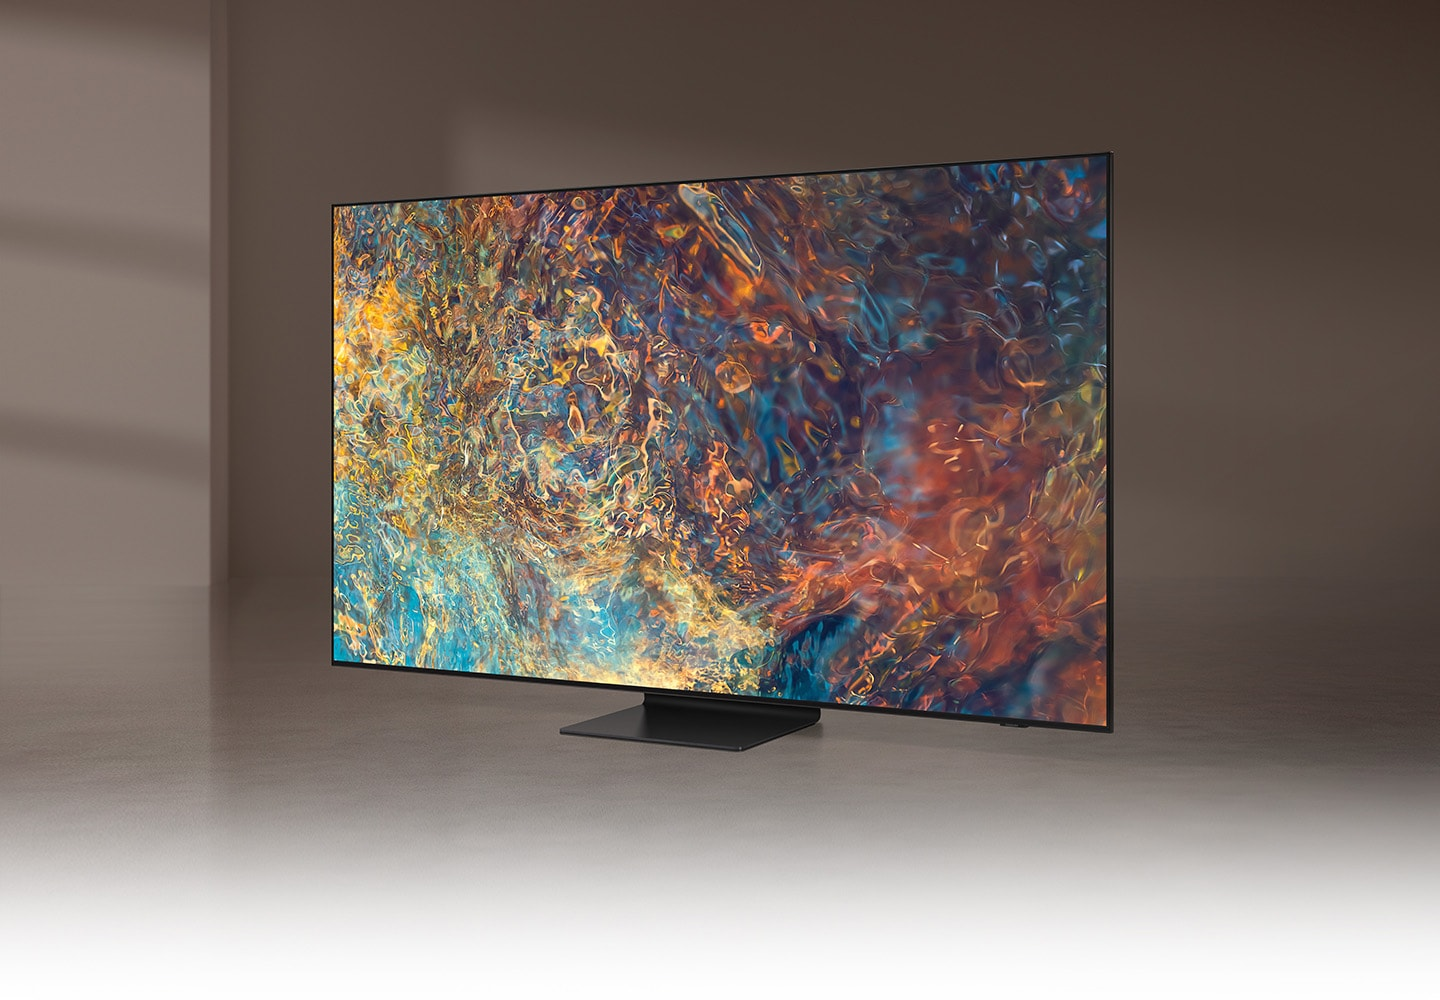 QN90A displays intricately blended color graphics which demonstrate long-lasting colors of Quantum Dot technology.